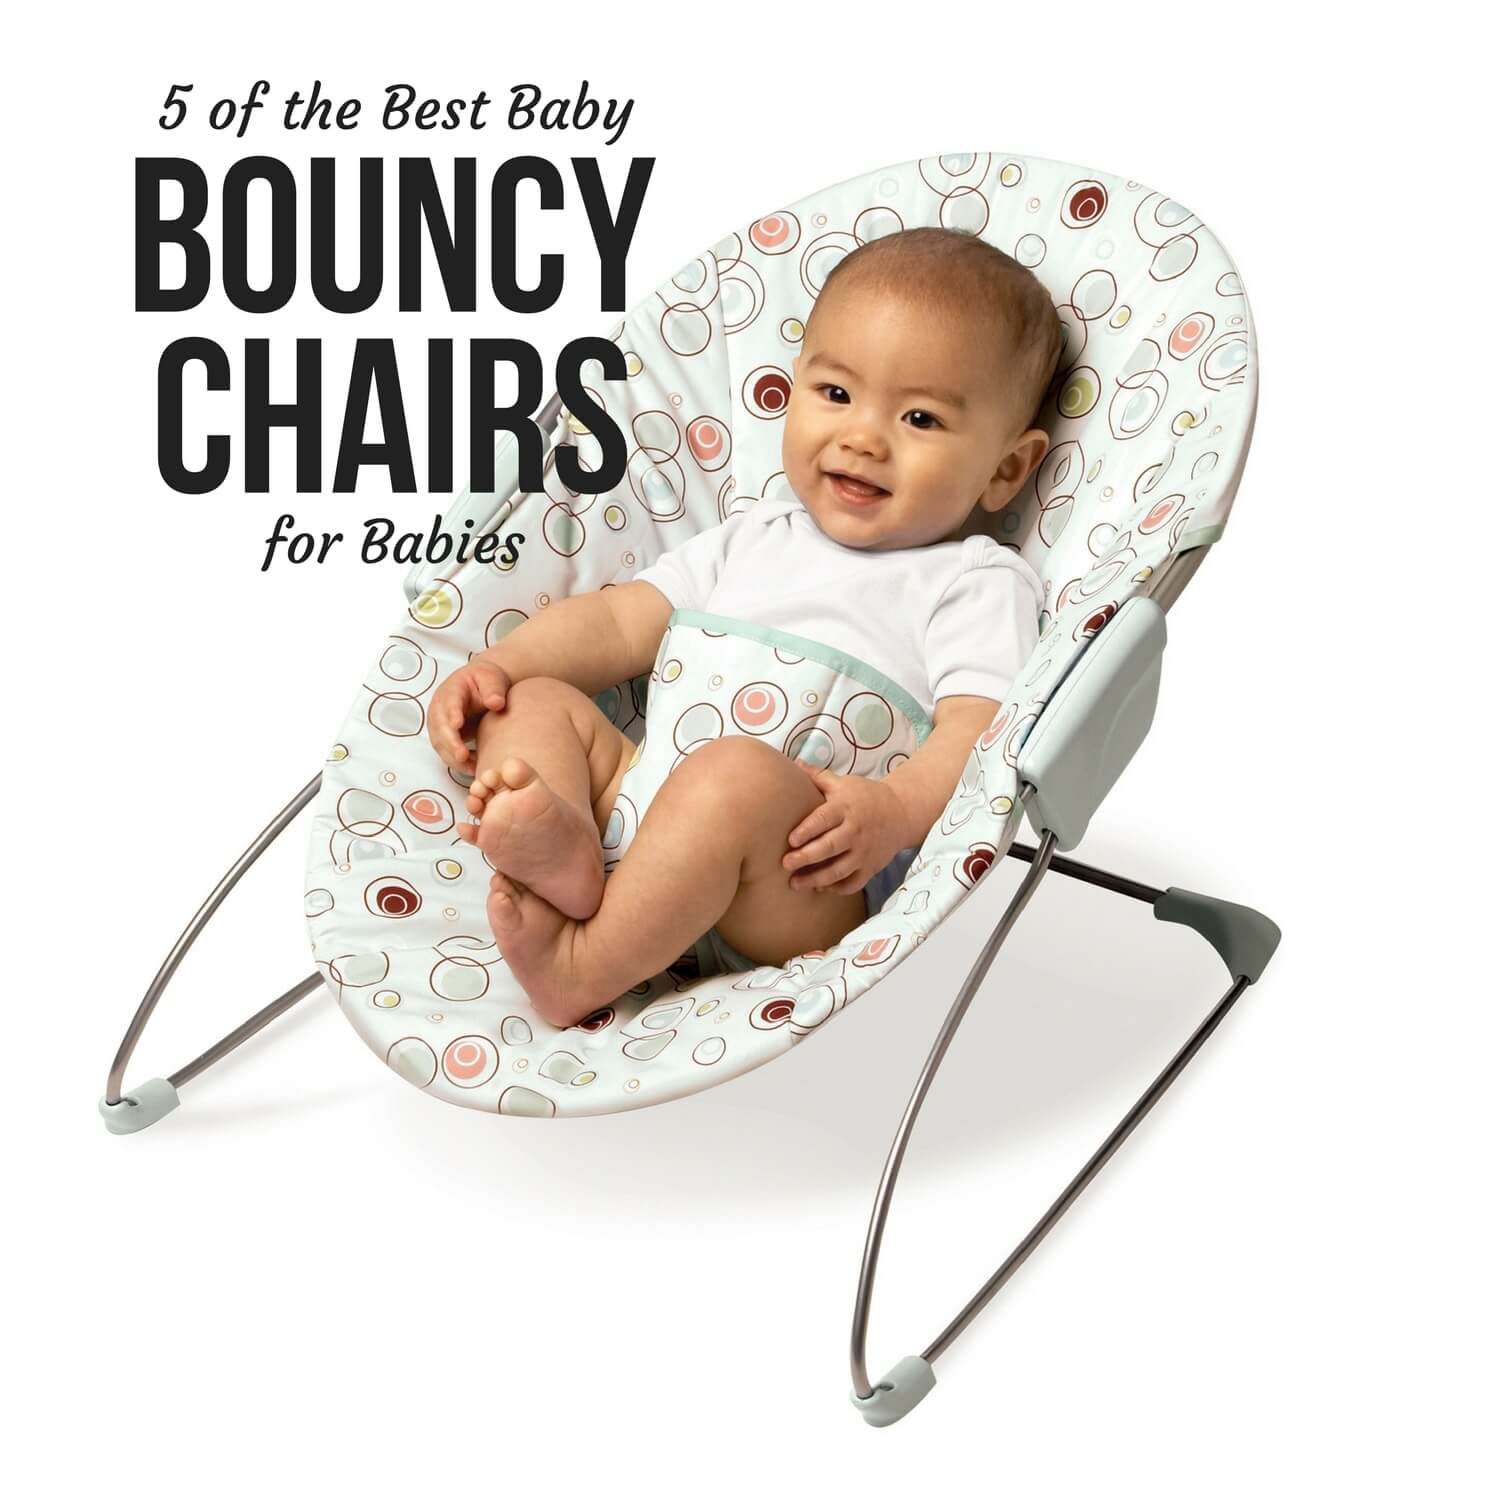 Best Bouncy Chairs for Babies  BabyCare Mag